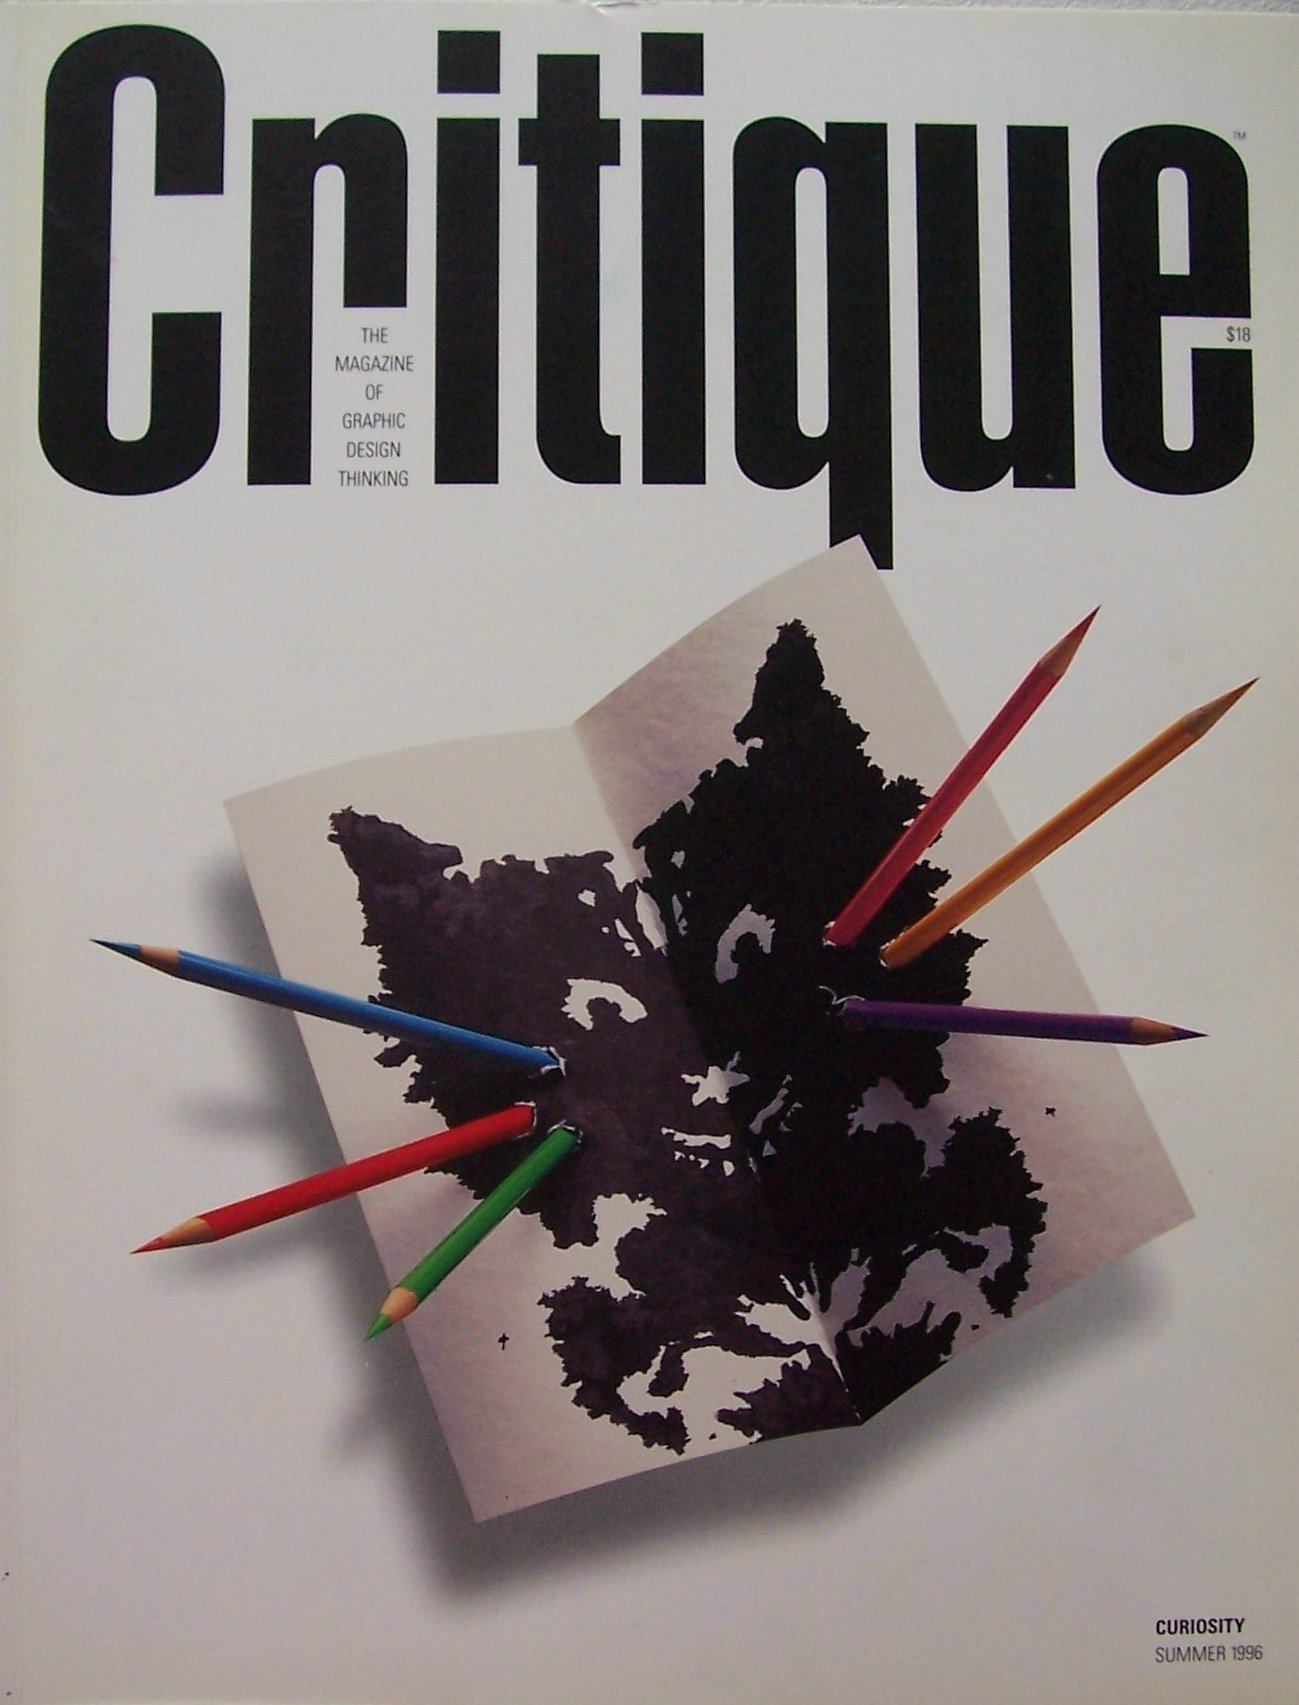 critique the magazine of graphic design thinking curiosity the inaugural issue number 1 summer 1996